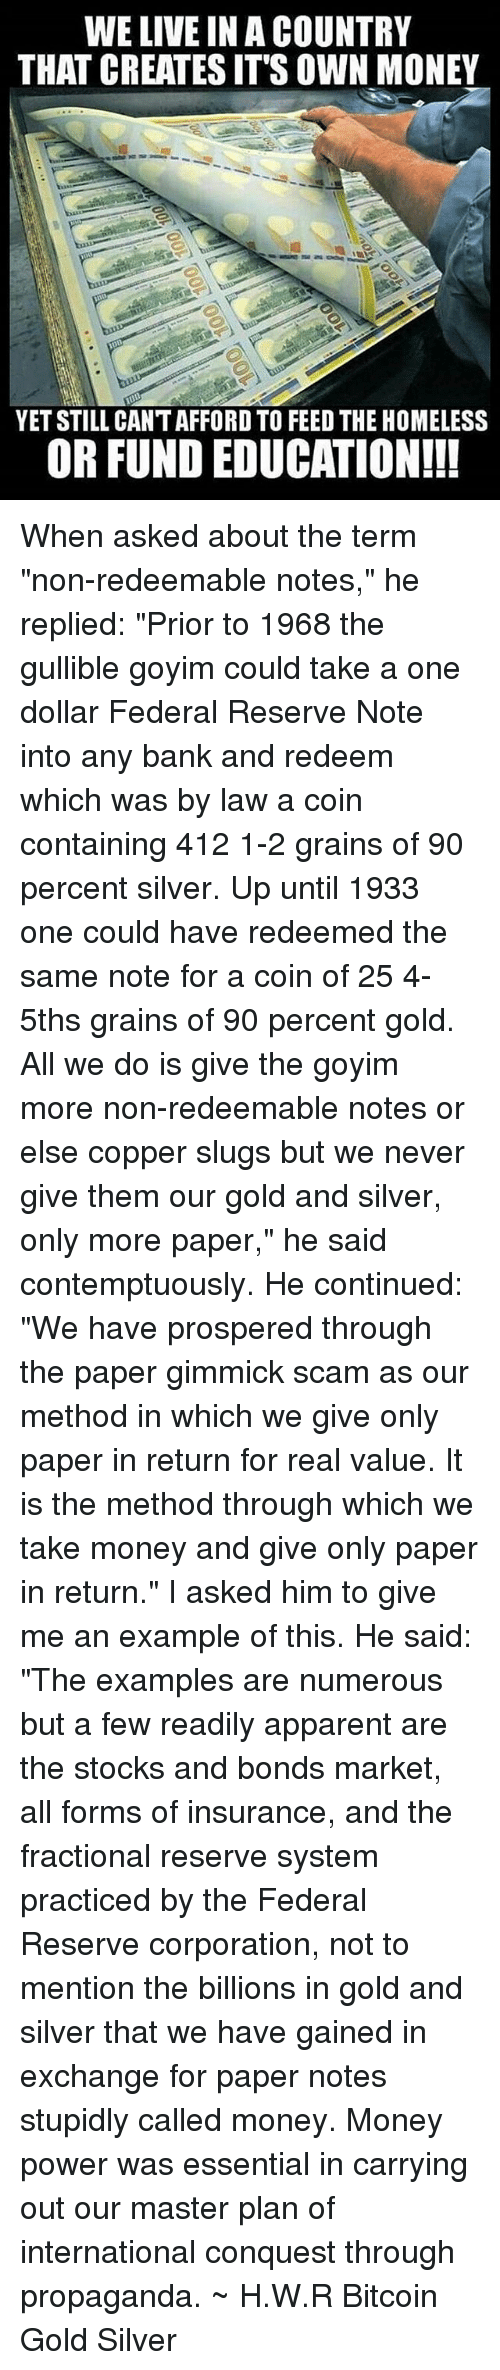 """methodical: WE LIVE IN A COUNTRY  THAT CREATES IT'S OWN MONEY  YET STILL CANT AFFORD TO FEED THE HOMELESS  OR FUND EDUCATION!!! When asked about the term """"non-redeemable notes,"""" he replied: """"Prior to 1968 the gullible goyim could take a one dollar Federal Reserve Note into any bank and redeem which was by law a coin containing 412 1-2 grains of 90 percent silver. Up until 1933 one could have redeemed the same note for a coin of 25 4-5ths grains of 90 percent gold. All we do is give the goyim more non-redeemable notes or else copper slugs but we never give them our gold and silver, only more paper,"""" he said contemptuously. He continued: """"We have prospered through the paper gimmick scam as our method in which we give only paper in return for real value. It is the method through which we take money and give only paper in return."""" I asked him to give me an example of this. He said: """"The examples are numerous but a few readily apparent are the stocks and bonds market, all forms of insurance, and the fractional reserve system practiced by the Federal Reserve corporation, not to mention the billions in gold and silver that we have gained in exchange for paper notes stupidly called money. Money power was essential in carrying out our master plan of international conquest through propaganda. ~ H.W.R Bitcoin Gold Silver"""